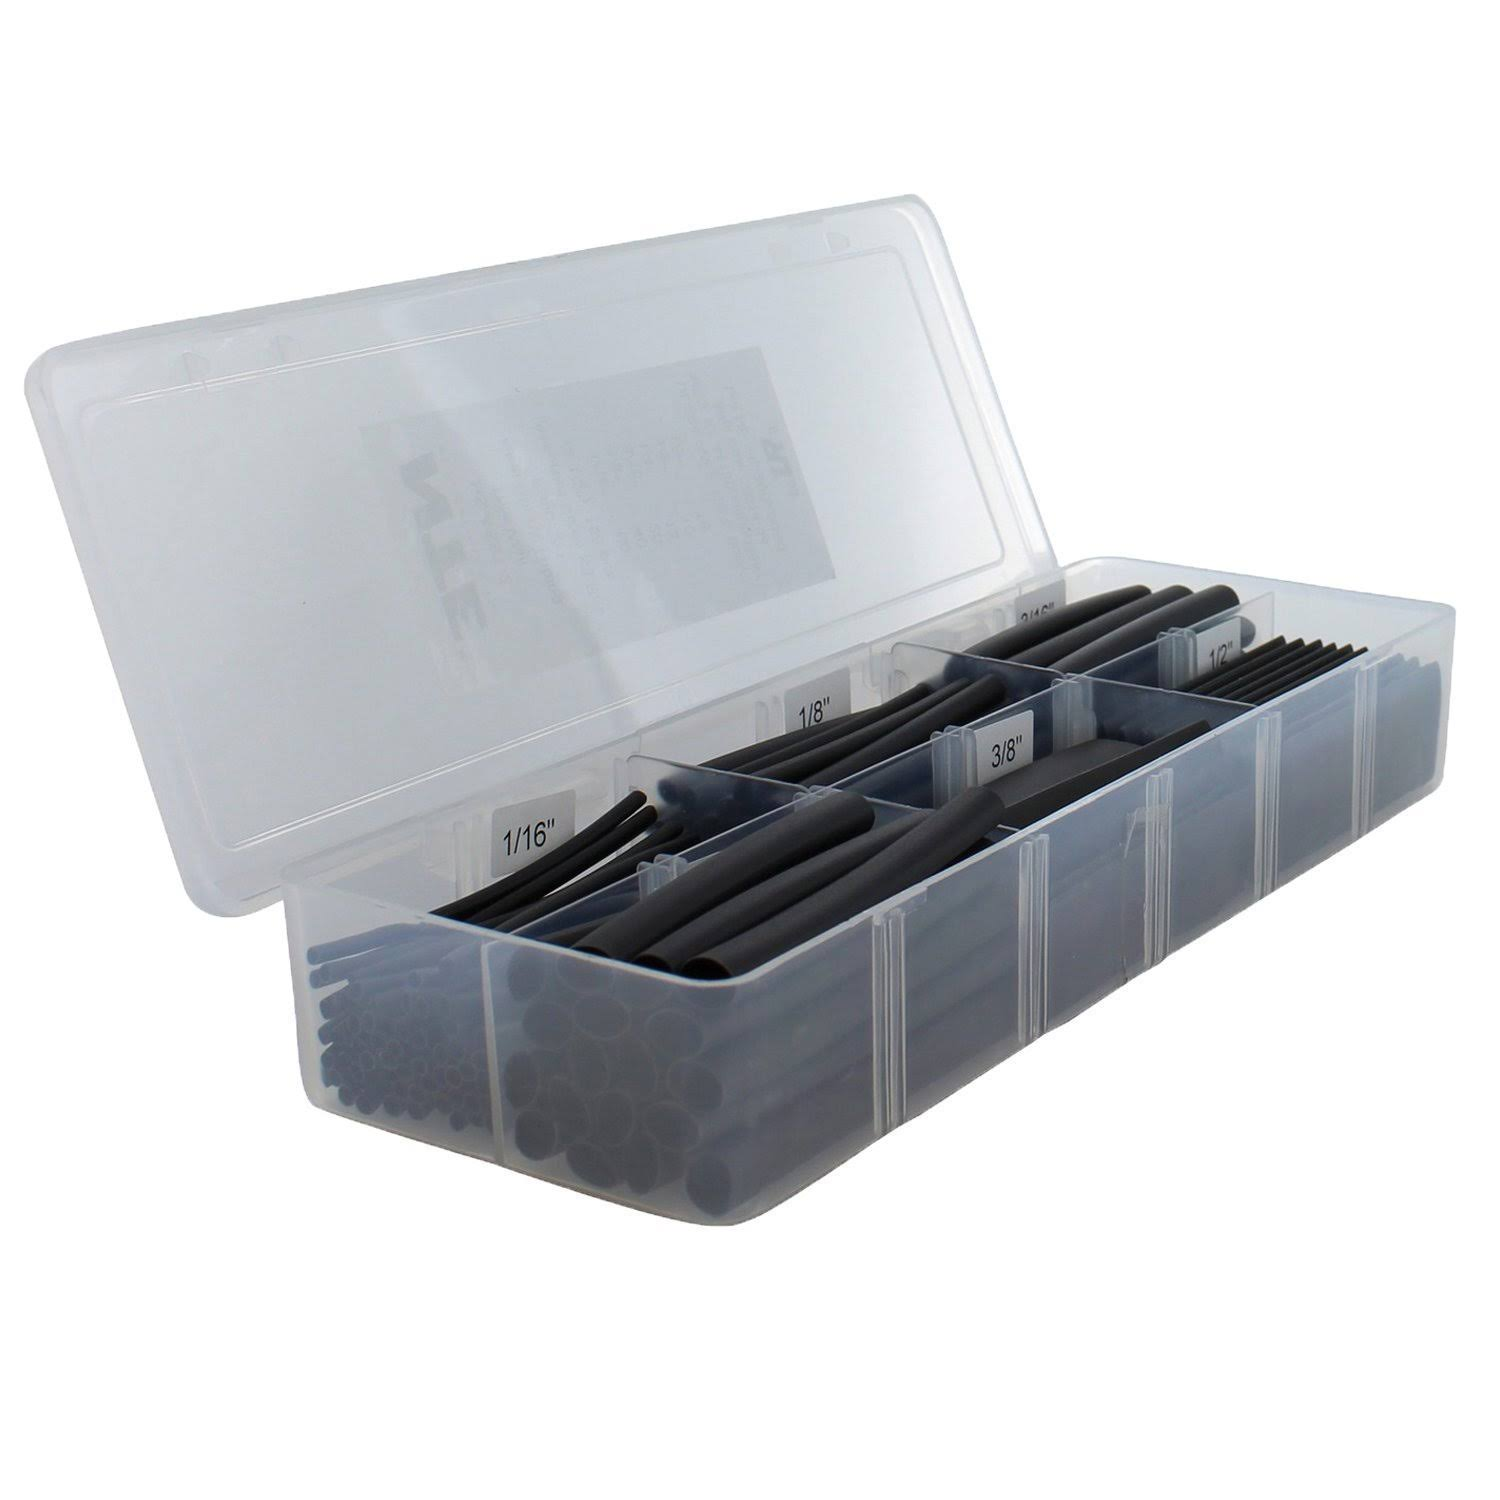 Nte Kester Hs-asst-2 Heat Shrink Tubing - Black, 158pcs